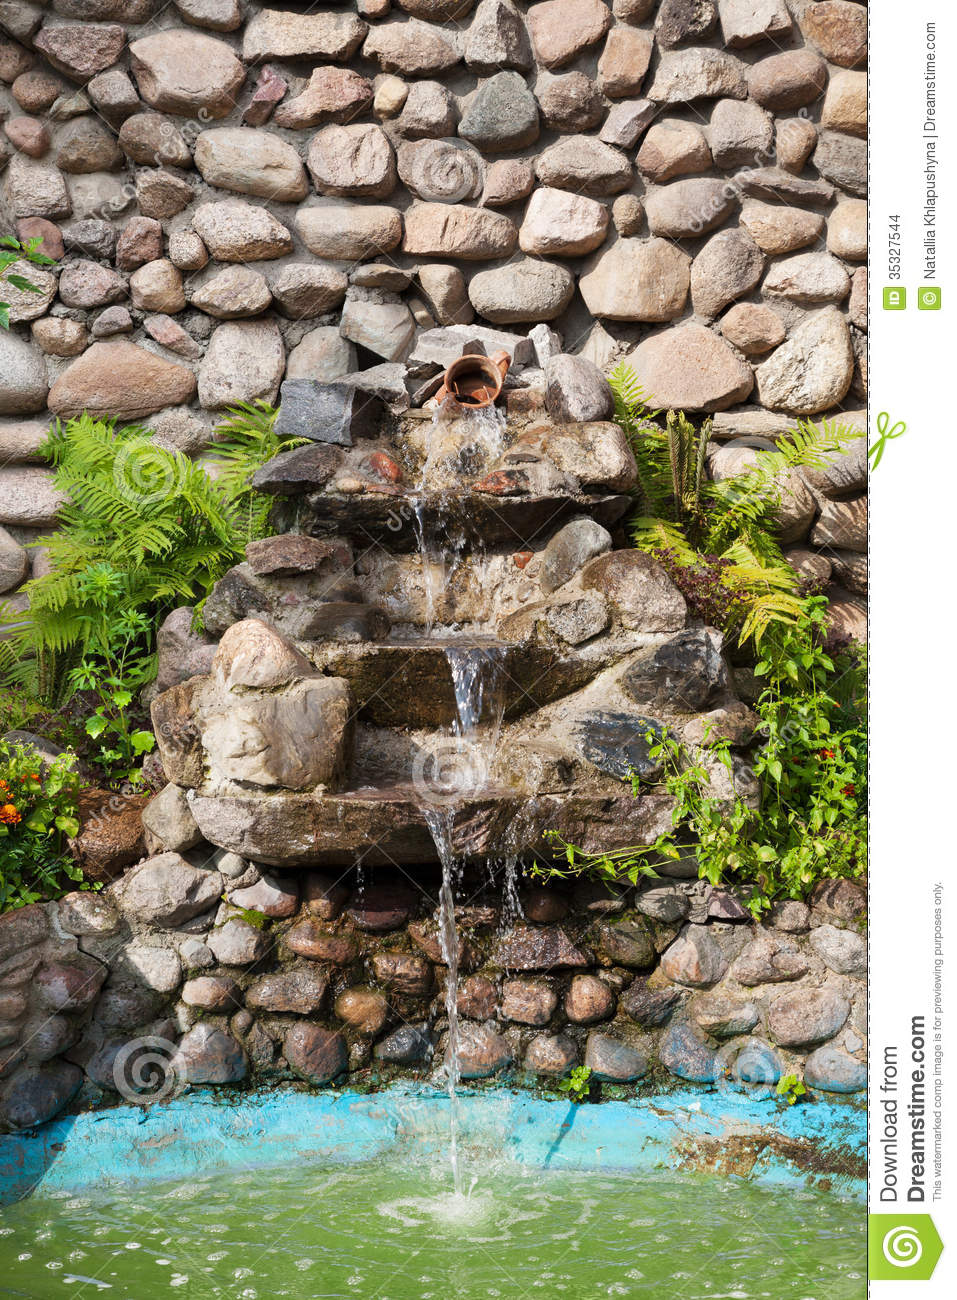 Decorative garden waterfall stock images image 35327544 for Ornamental pond waterfall